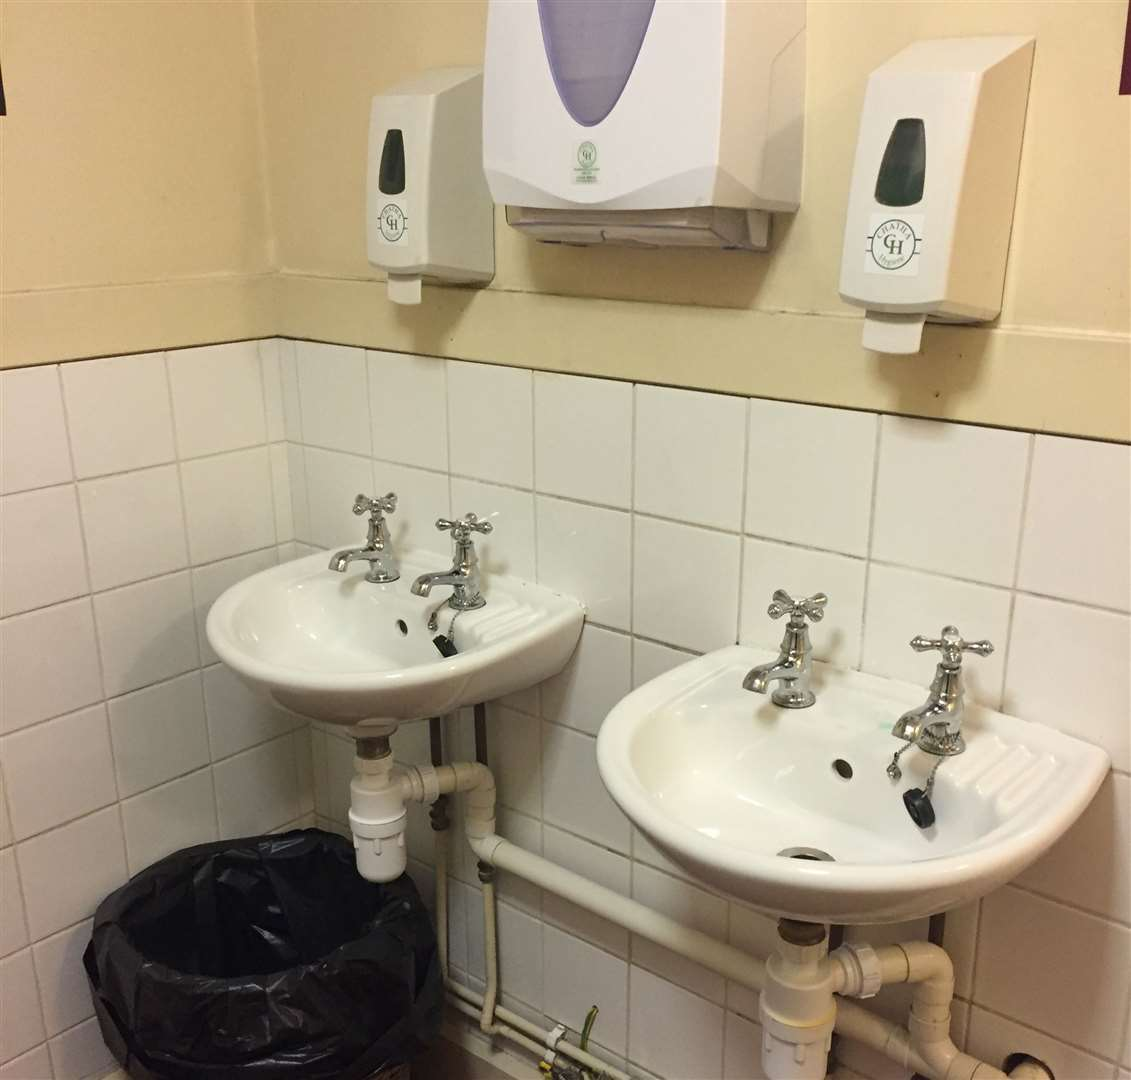 Both the ladies and the gents toilets at the Royal Oak are due an overhaul